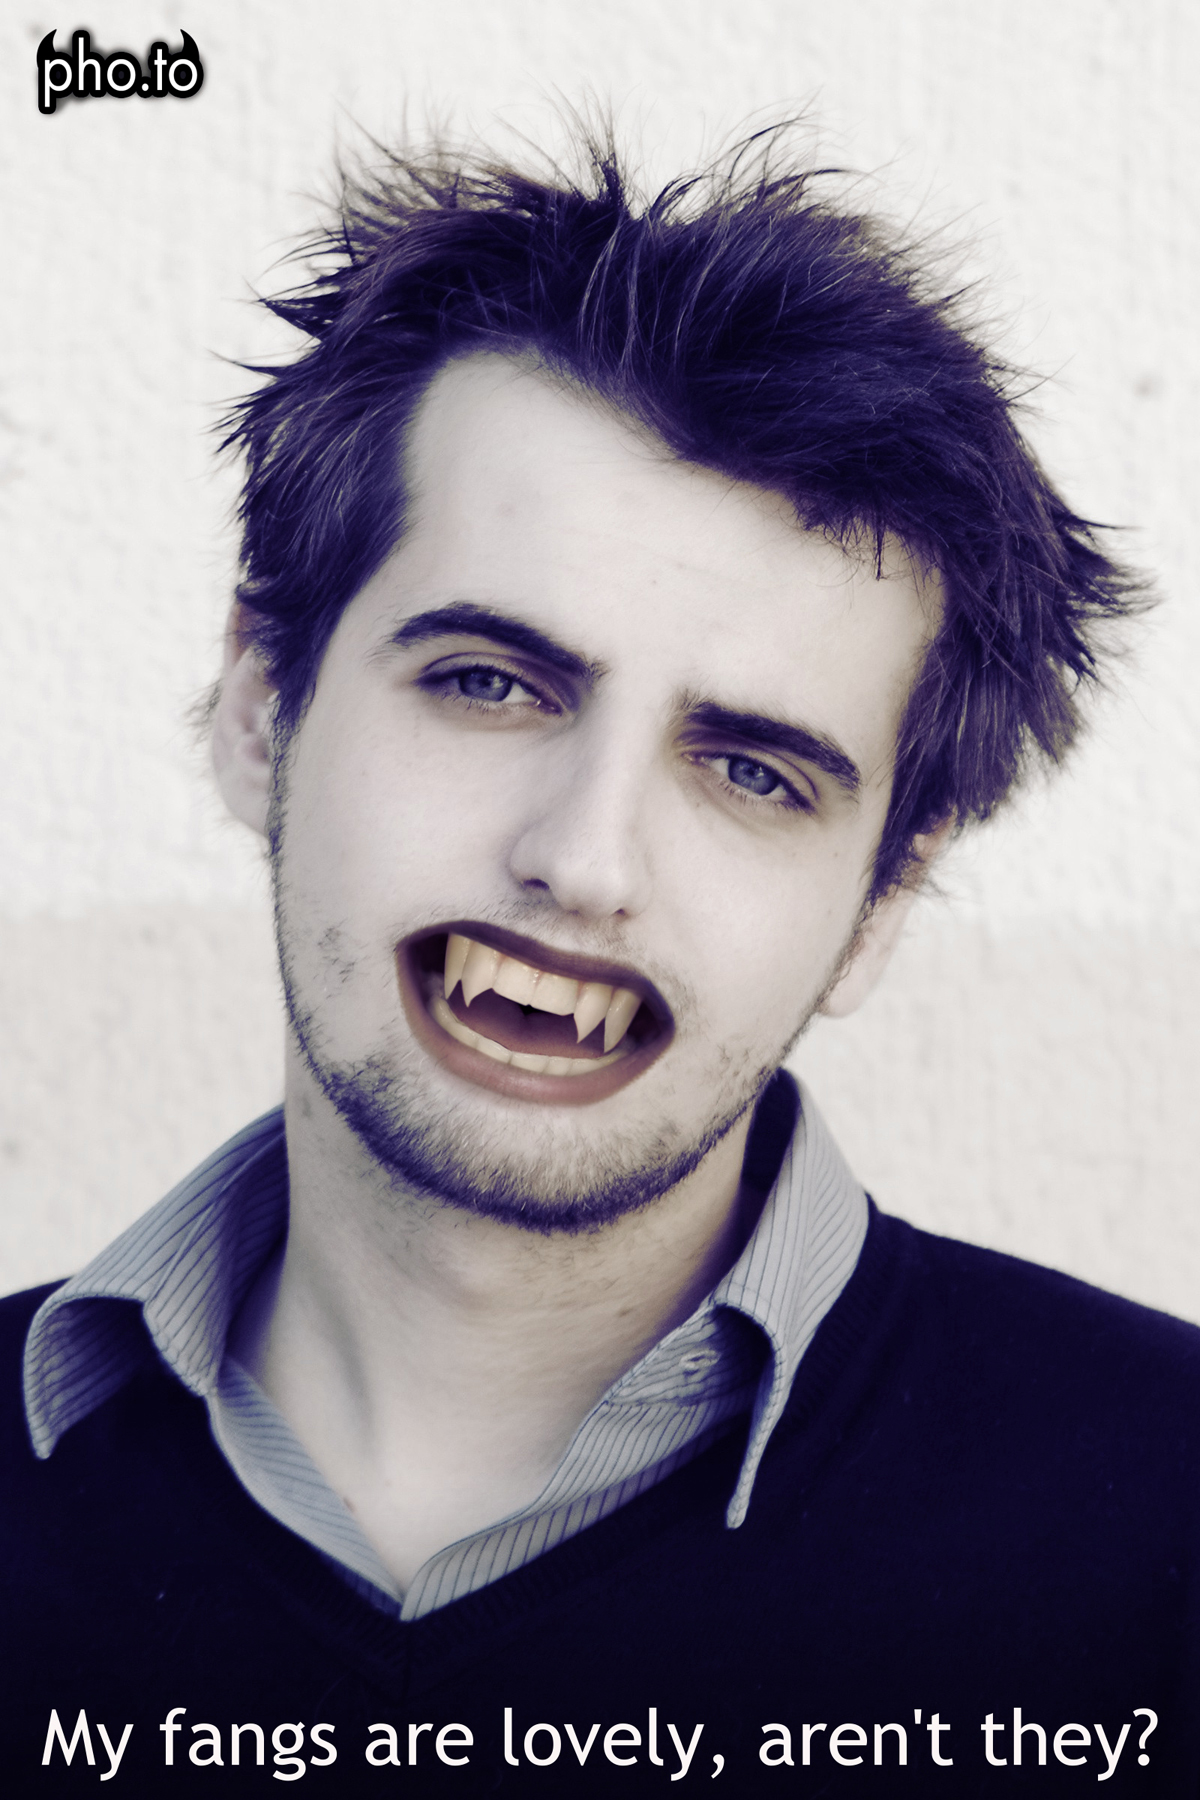 Vampire photo effect turns a boy, who wants to be a vampire, into a ...